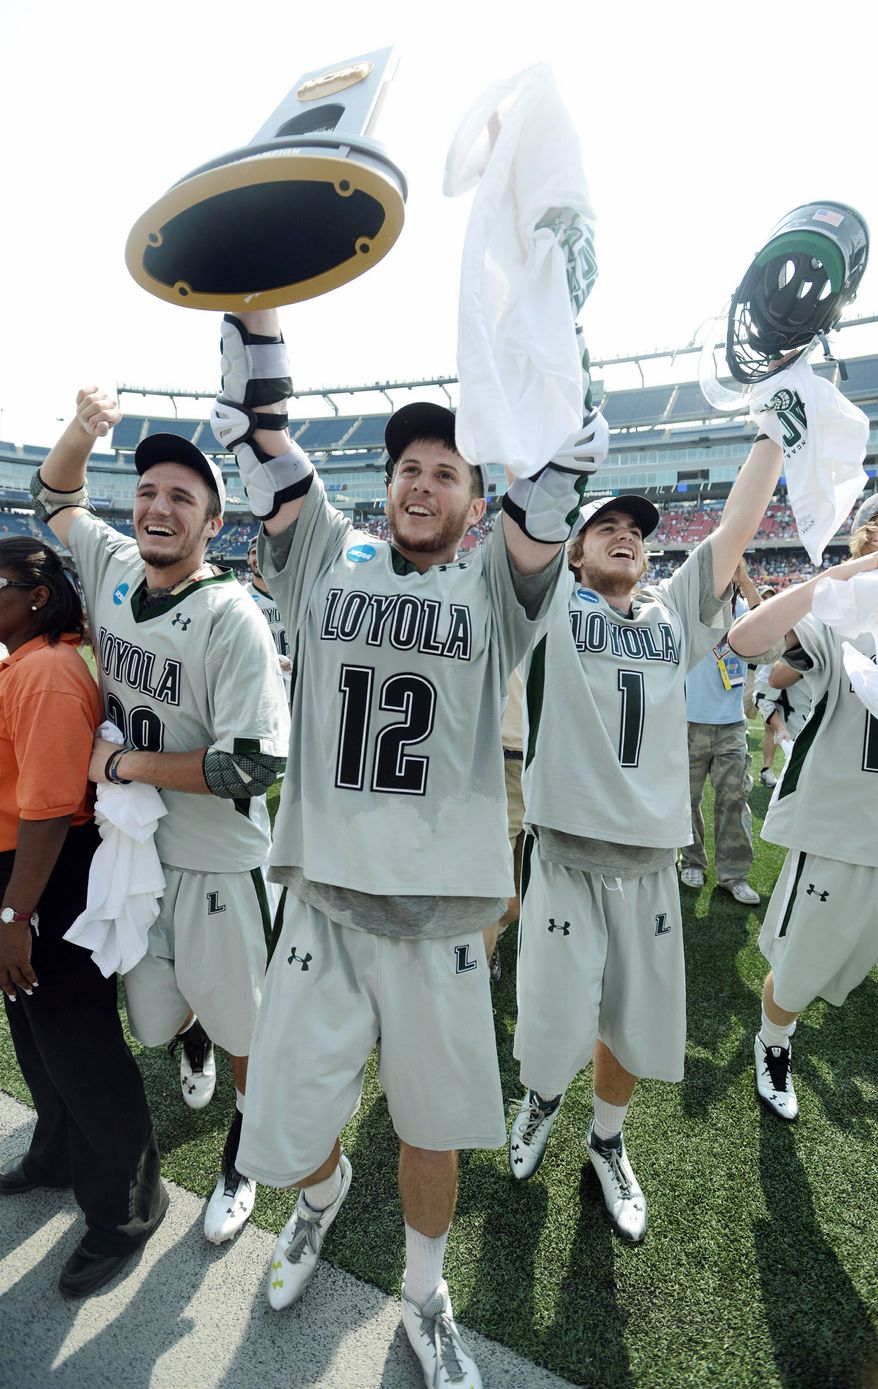 Loyola players (from left) T.J. Harris, Eric Lusby and Michael Bonitatibus celebrated the school's first lacrosse championship after beating Maryland 9-3 on Monday. Lusby, who scored a tournament-record 17 goals, won't be back next season.